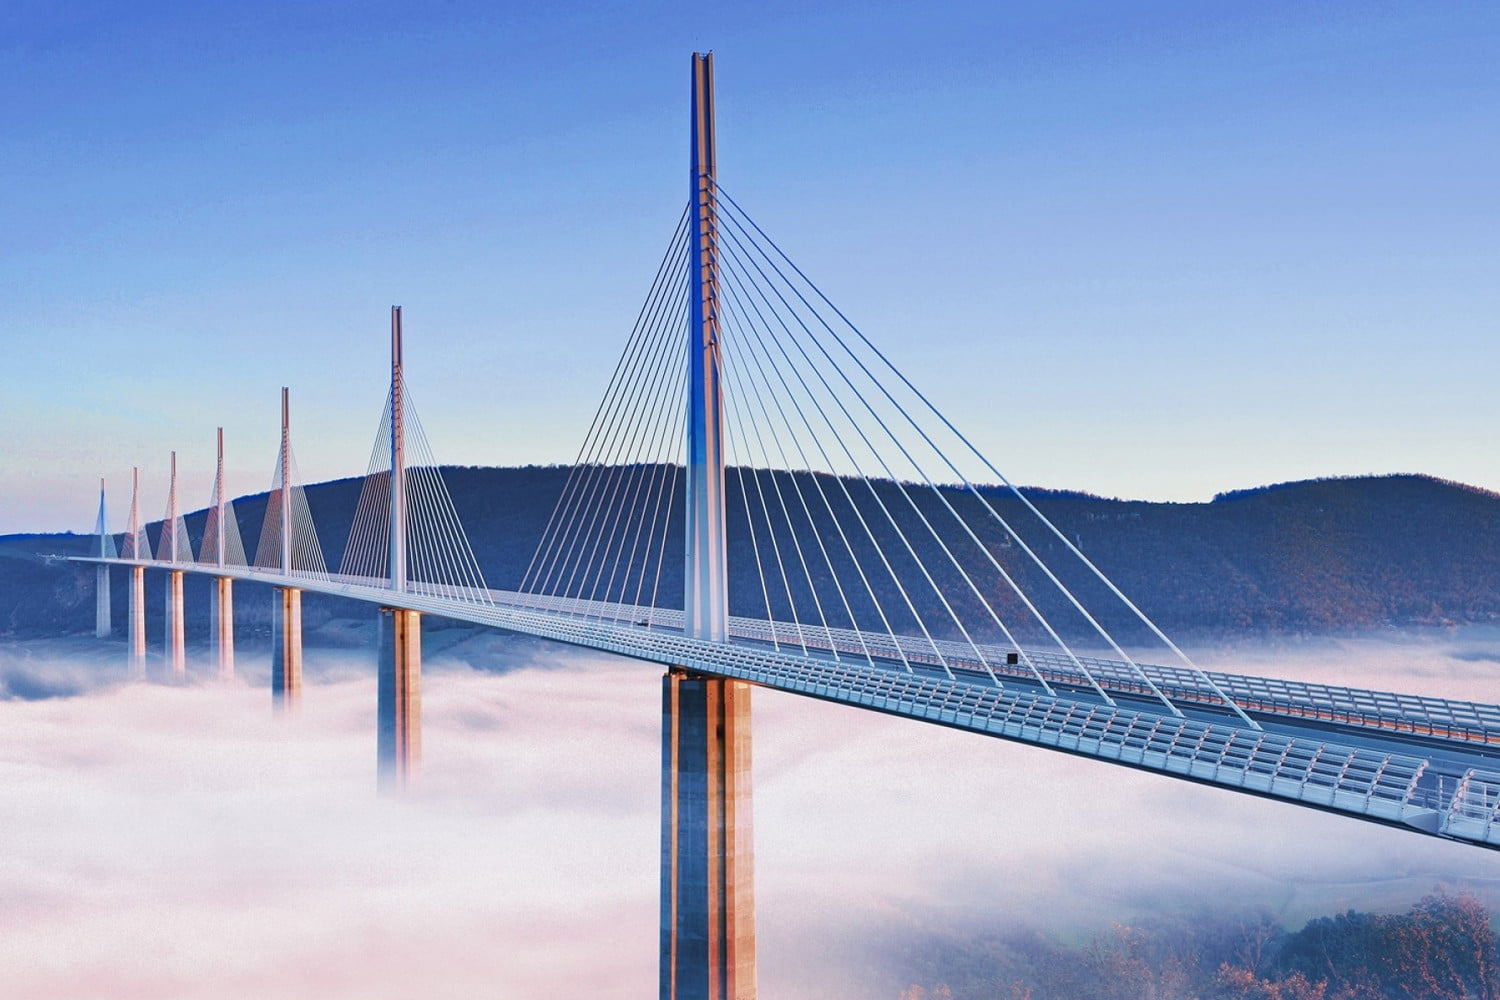 The Biggest, Longest, Tallest, and Most Impressive Bridges in the World |  Digital Trends